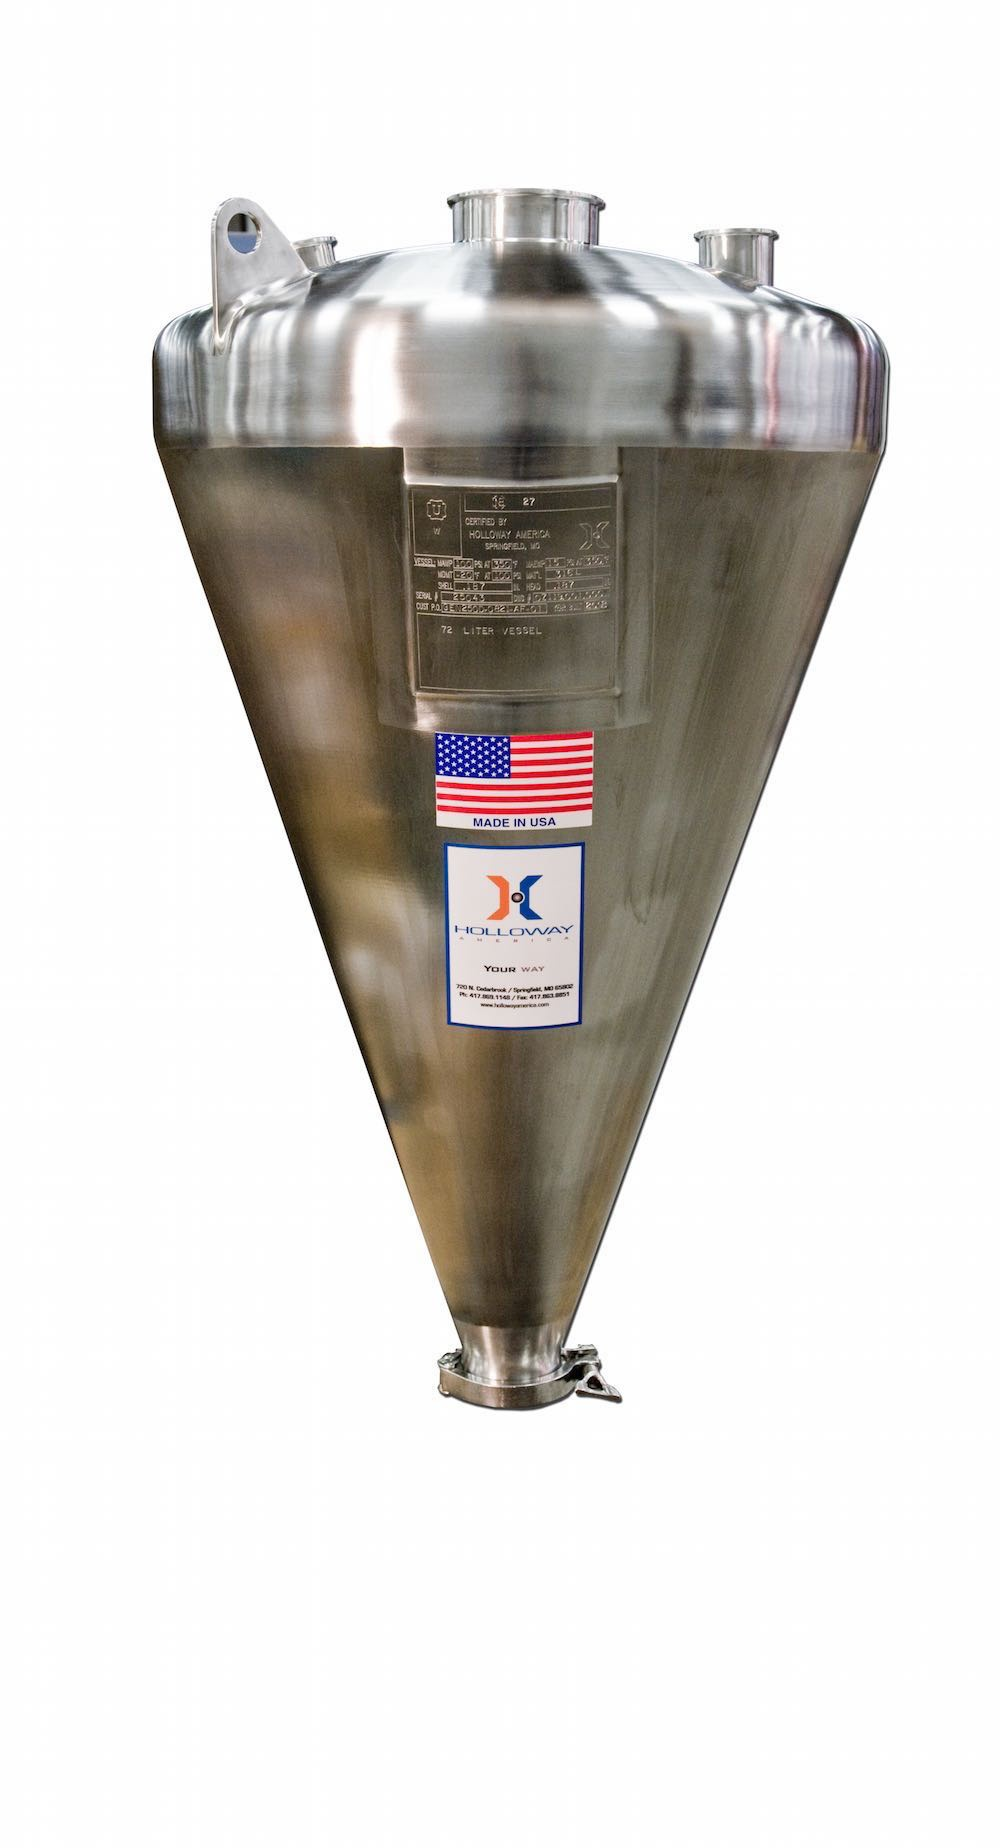 Ask HOLLOWAY AMERICA about its stainless steel mixing tanks and other vessels, like the one shown here.